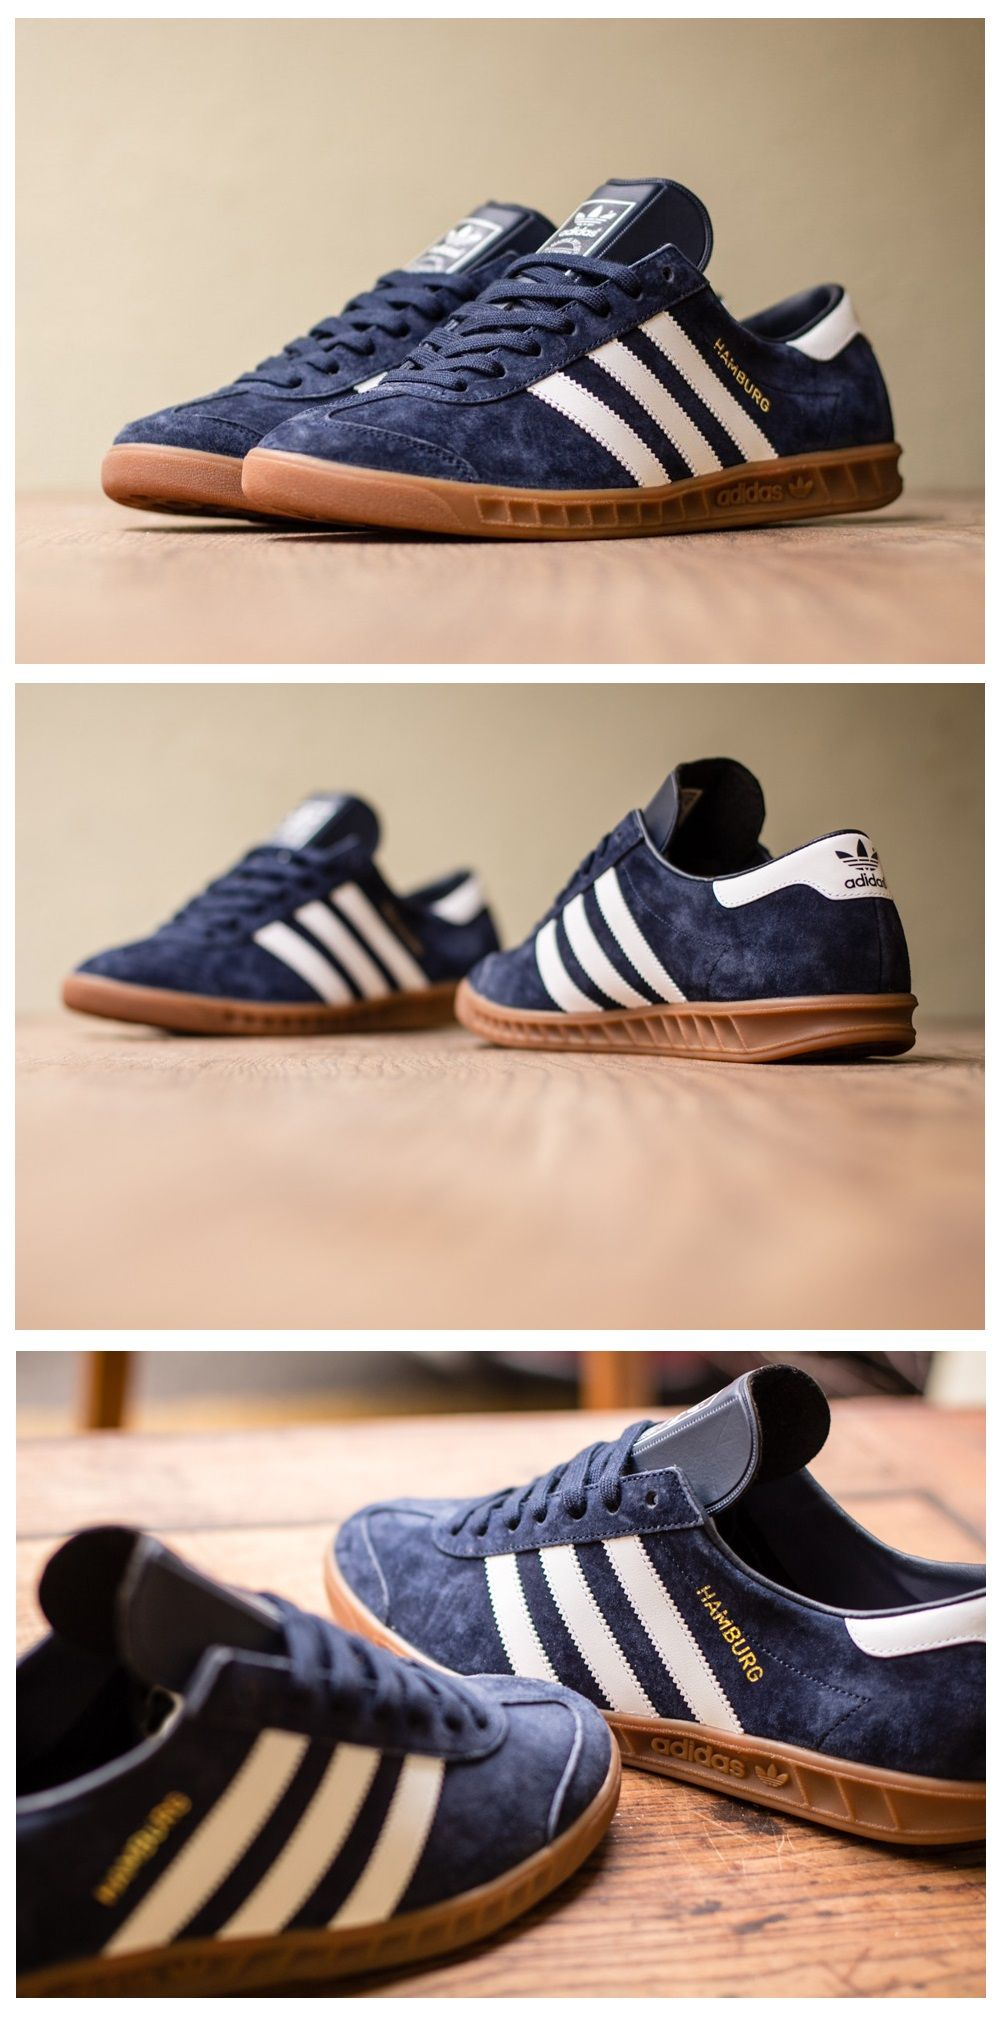 Adidas Originals Suede Hamburg Pinterest Mode Navy qZr41WPq